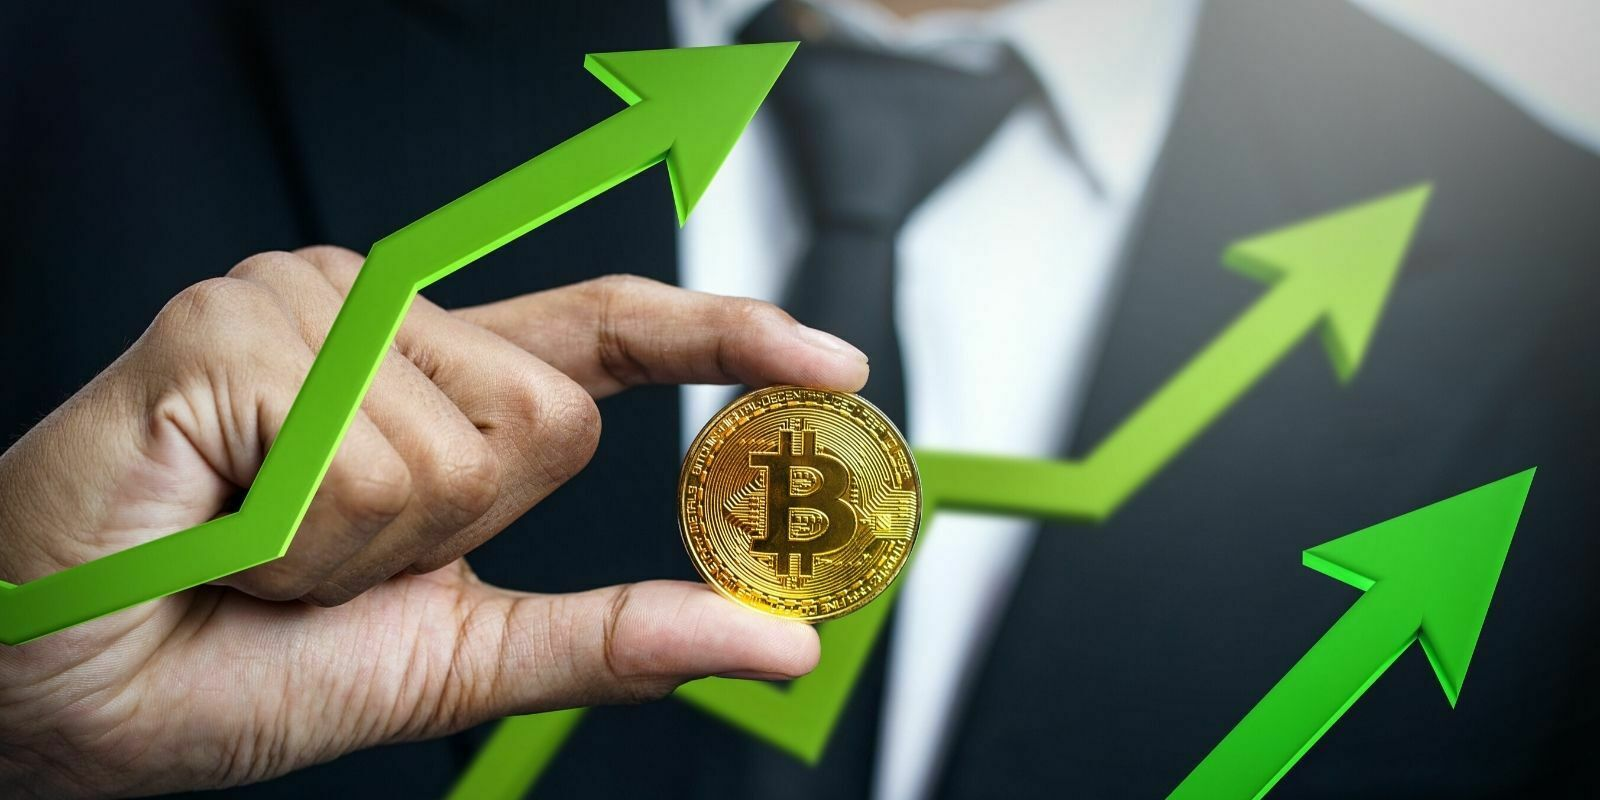 Le Bitcoin repasse au dessus des 10 000 dollars, bull run imminent ?